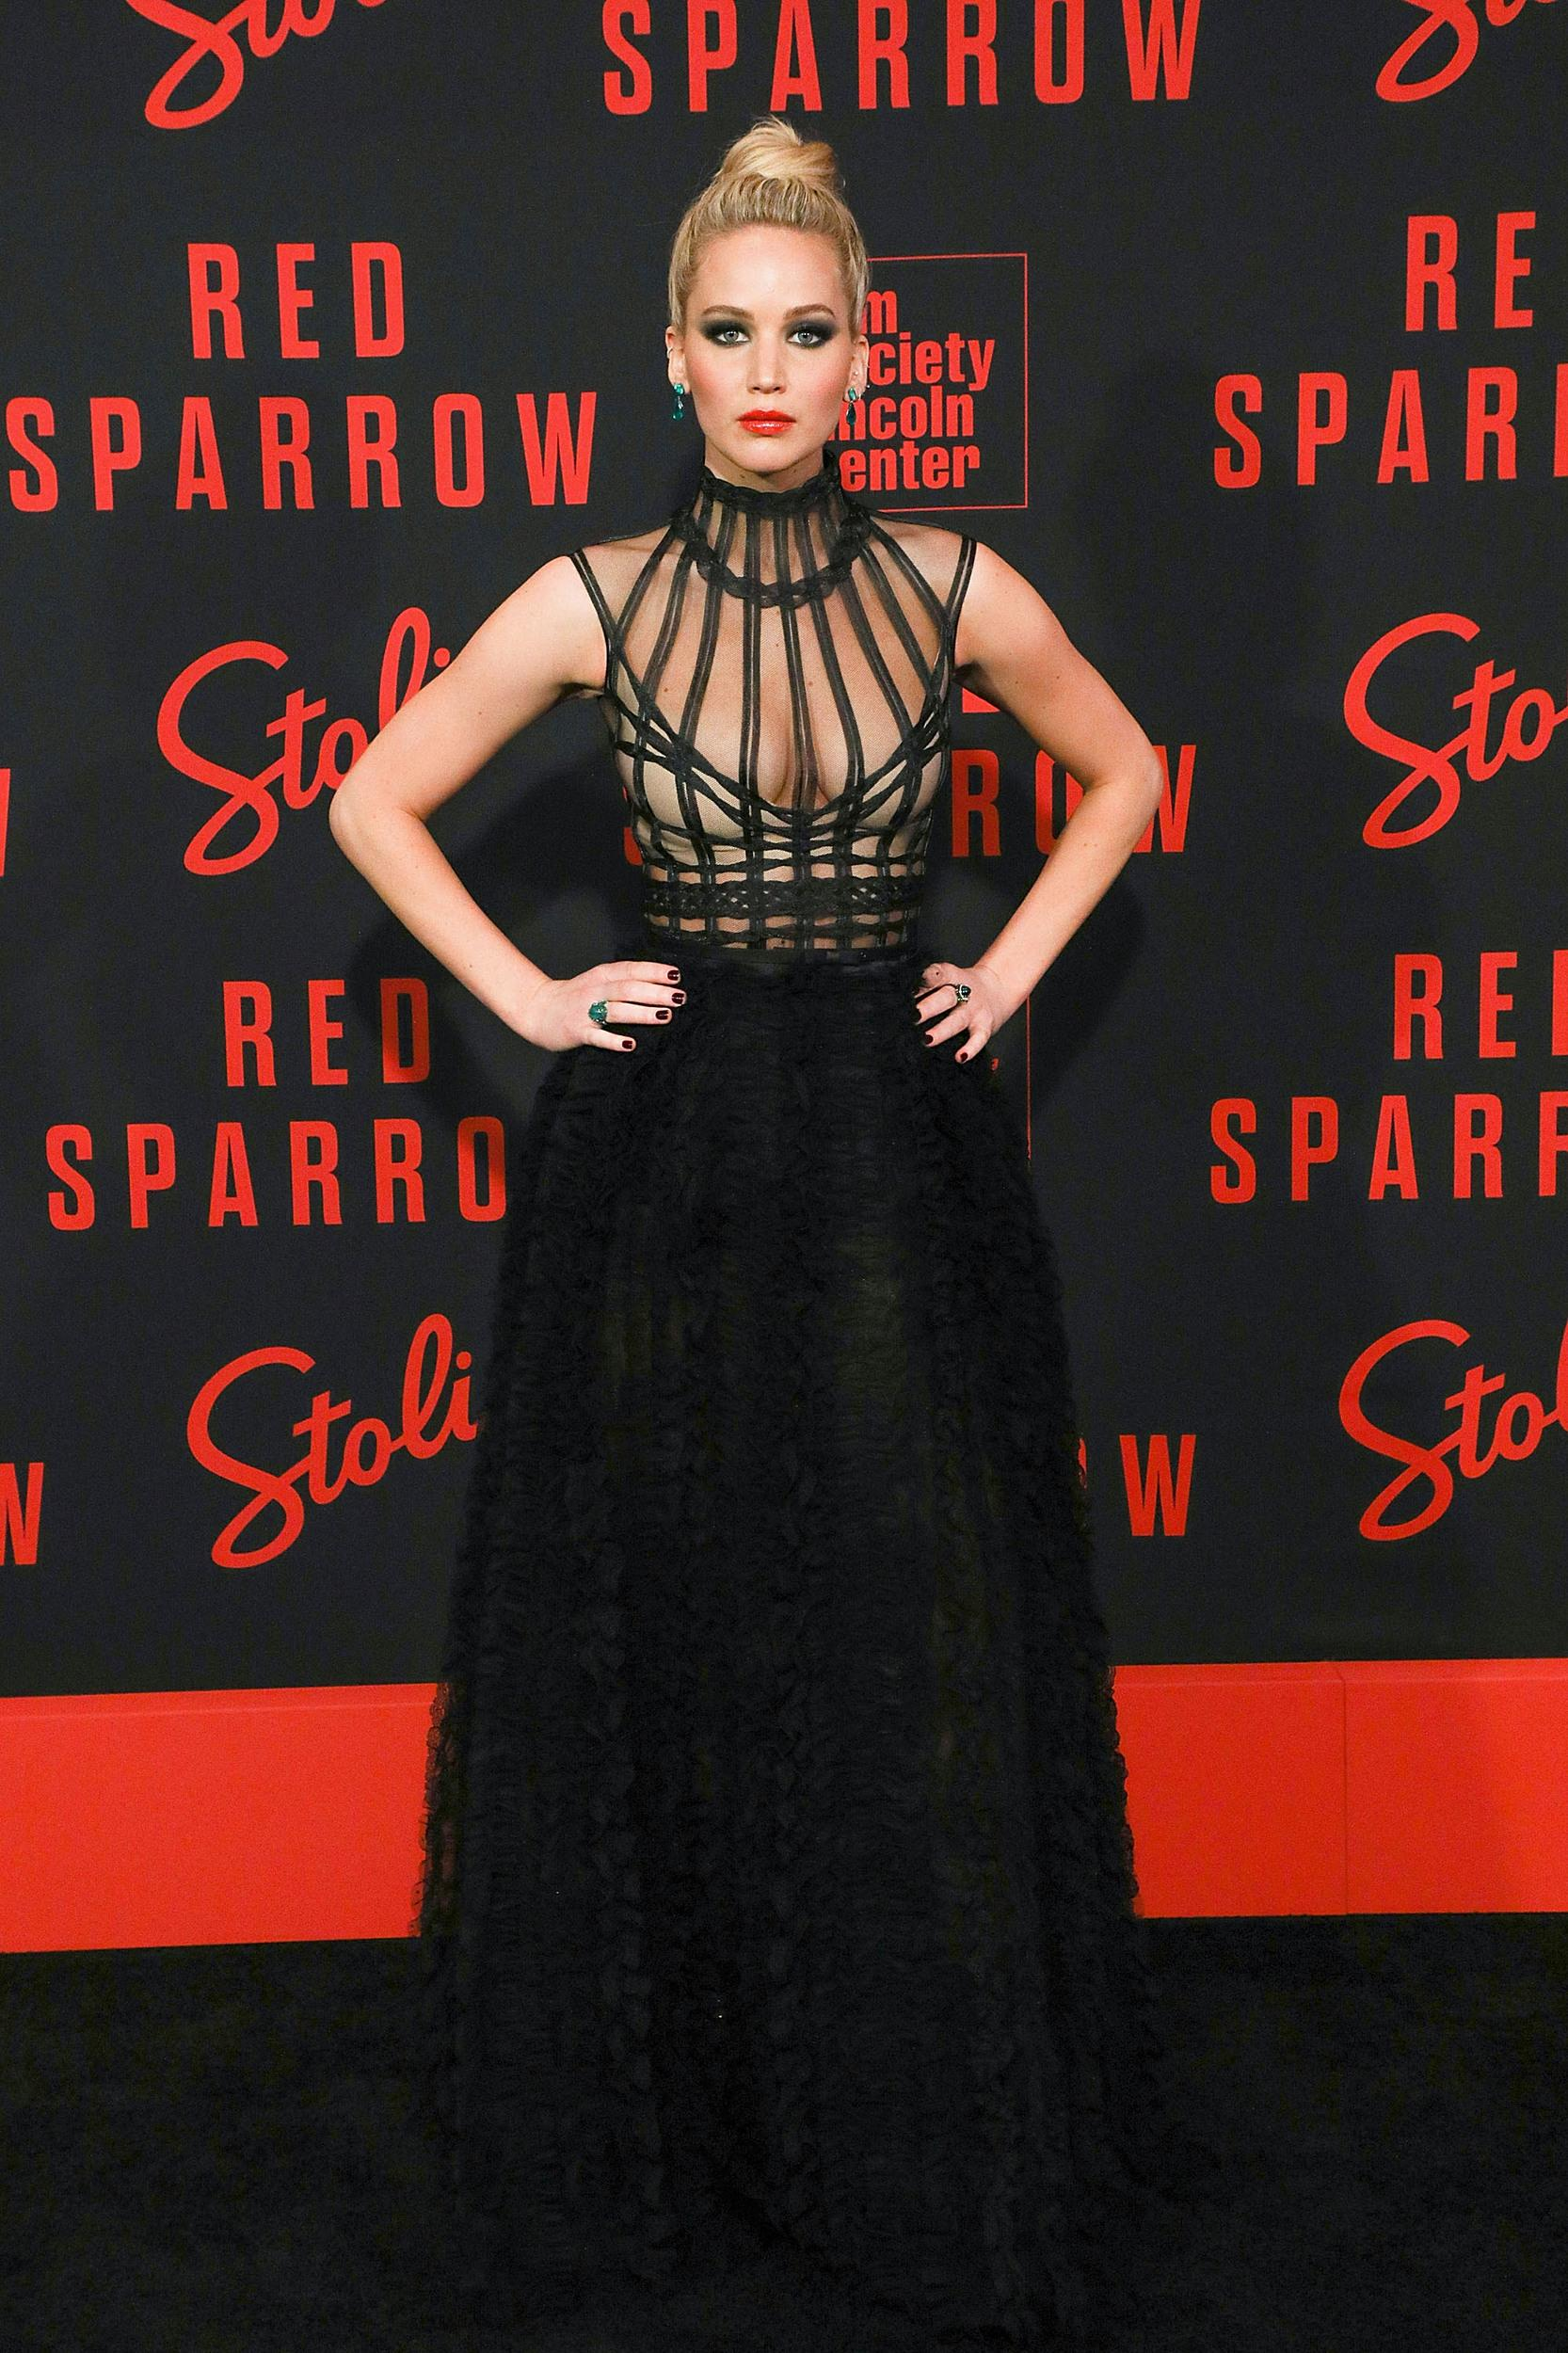 NEW YORK, NY - FEBRUARY 26:  Actress Jennifer Lawrence attends the 'Red Sparrow' premiere at Alice Tully Hall at Lincoln Center on February 26, 2018 in New York City.  (Photo by Taylor Hill/FilmMagic)